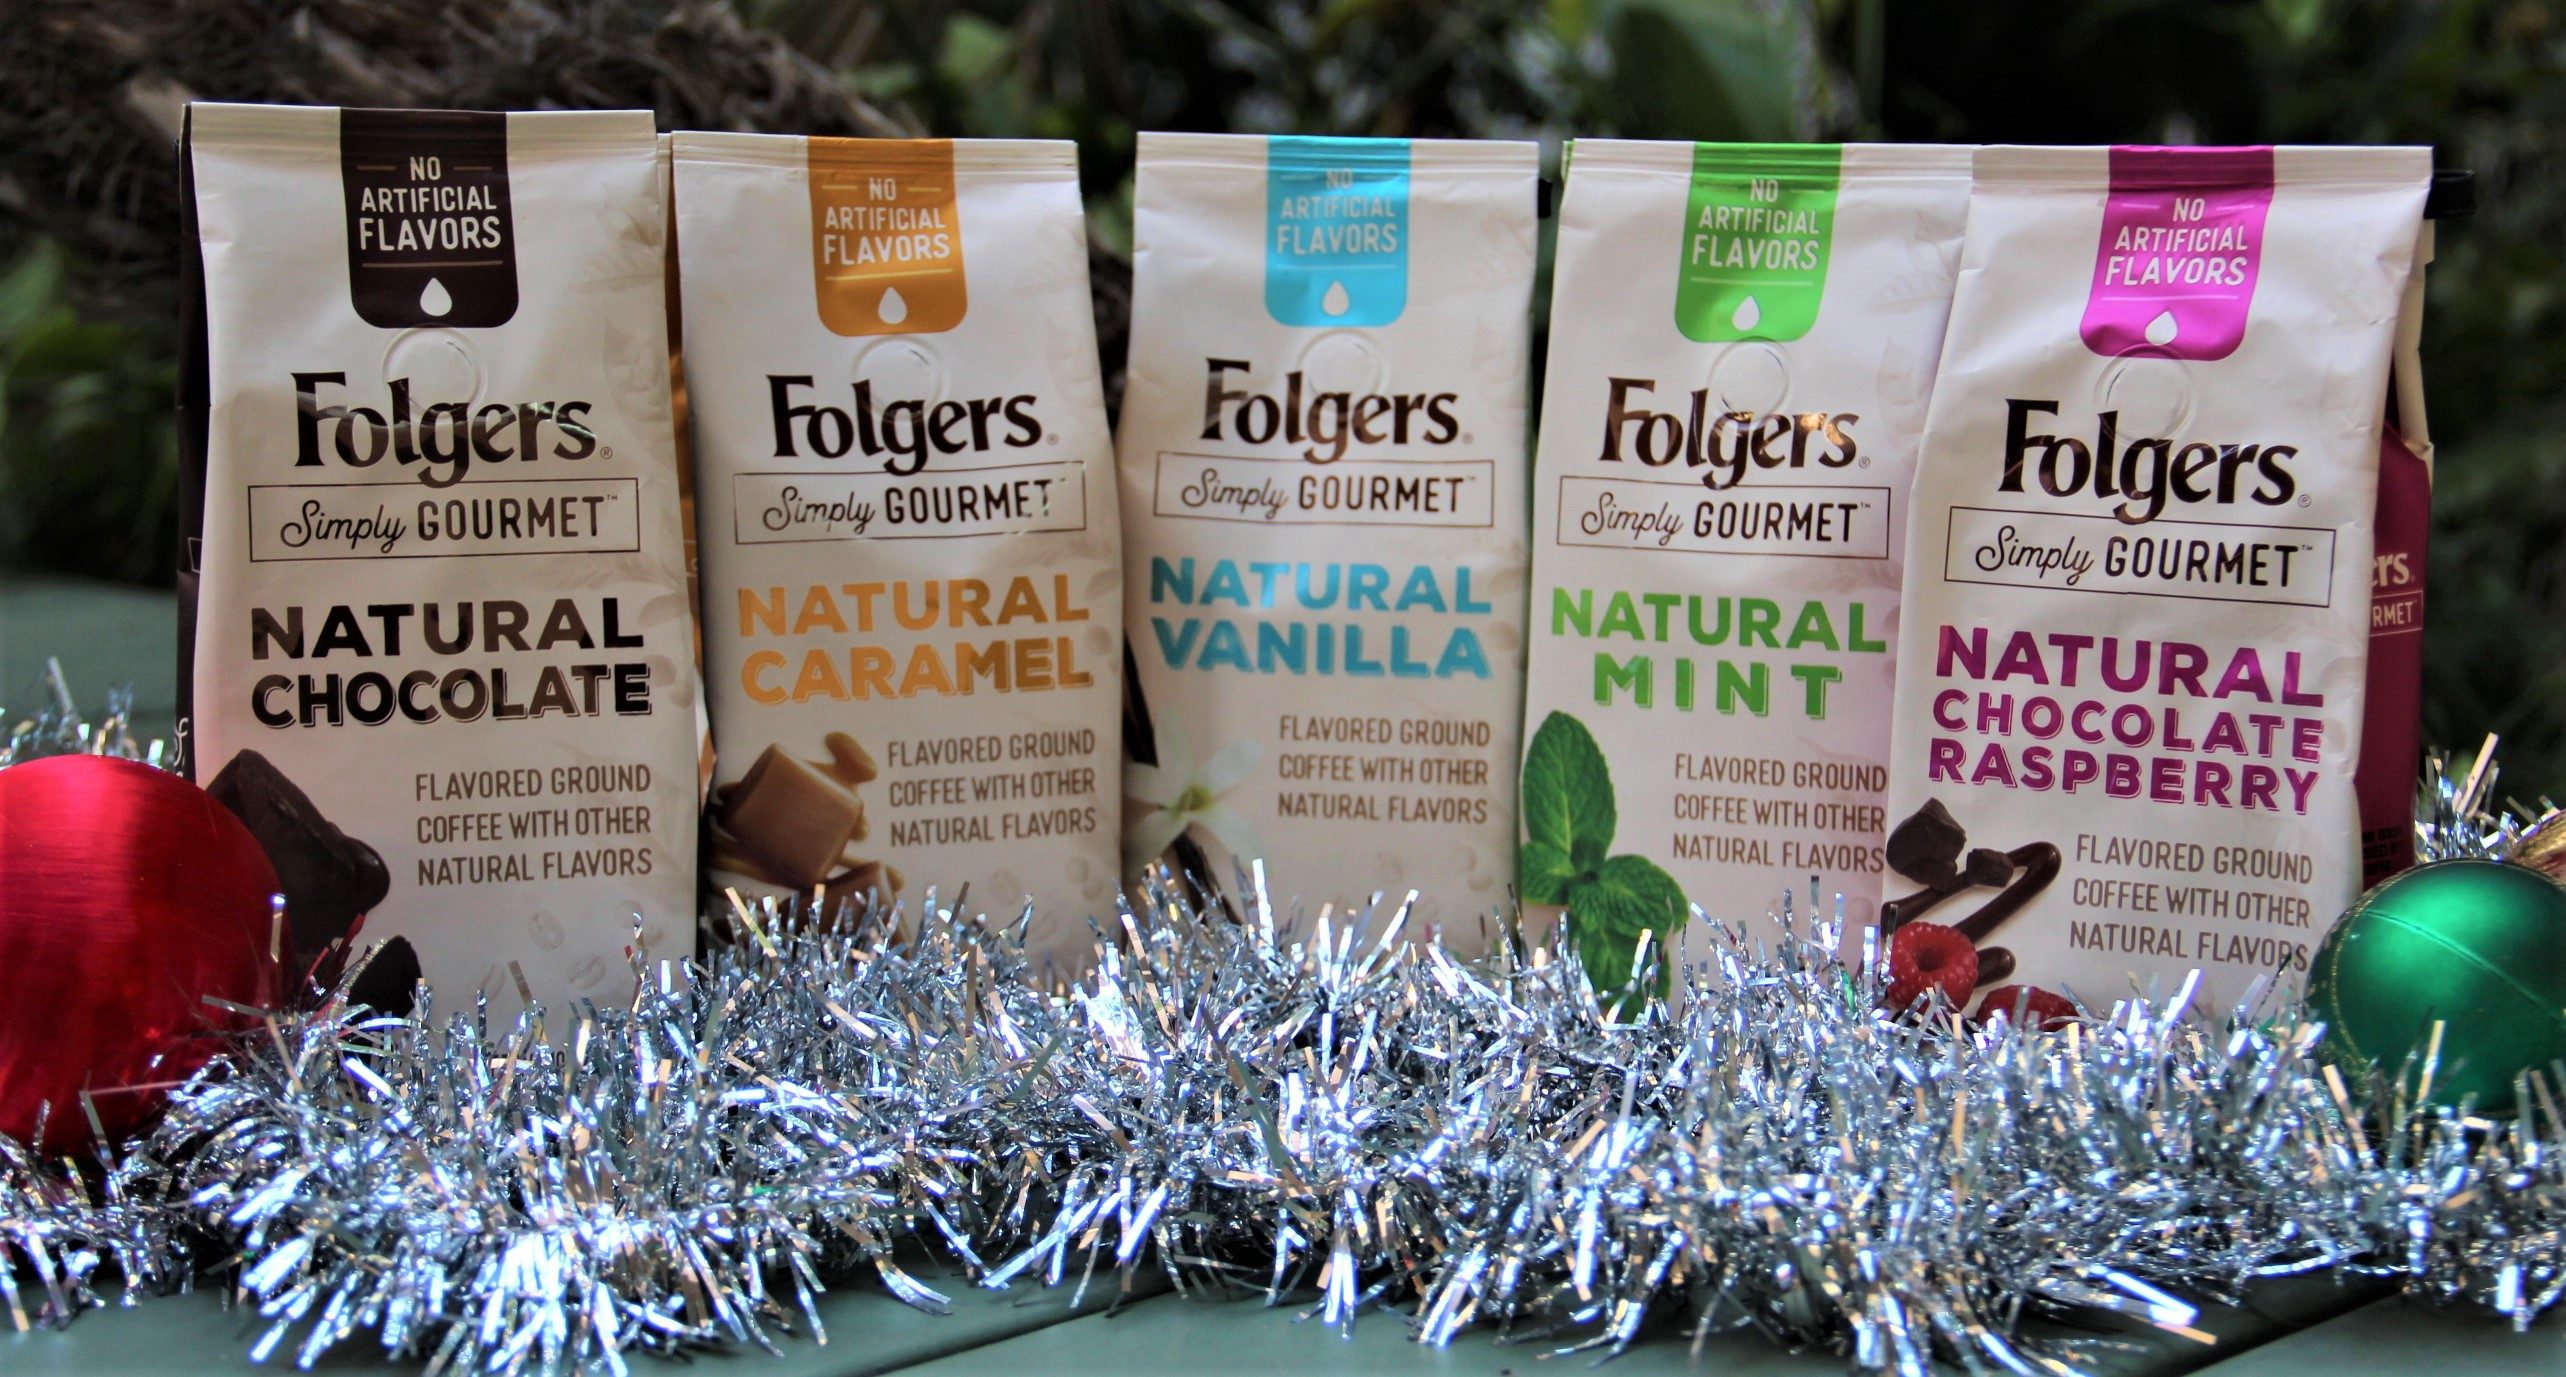 folgers simply gourmet coffee